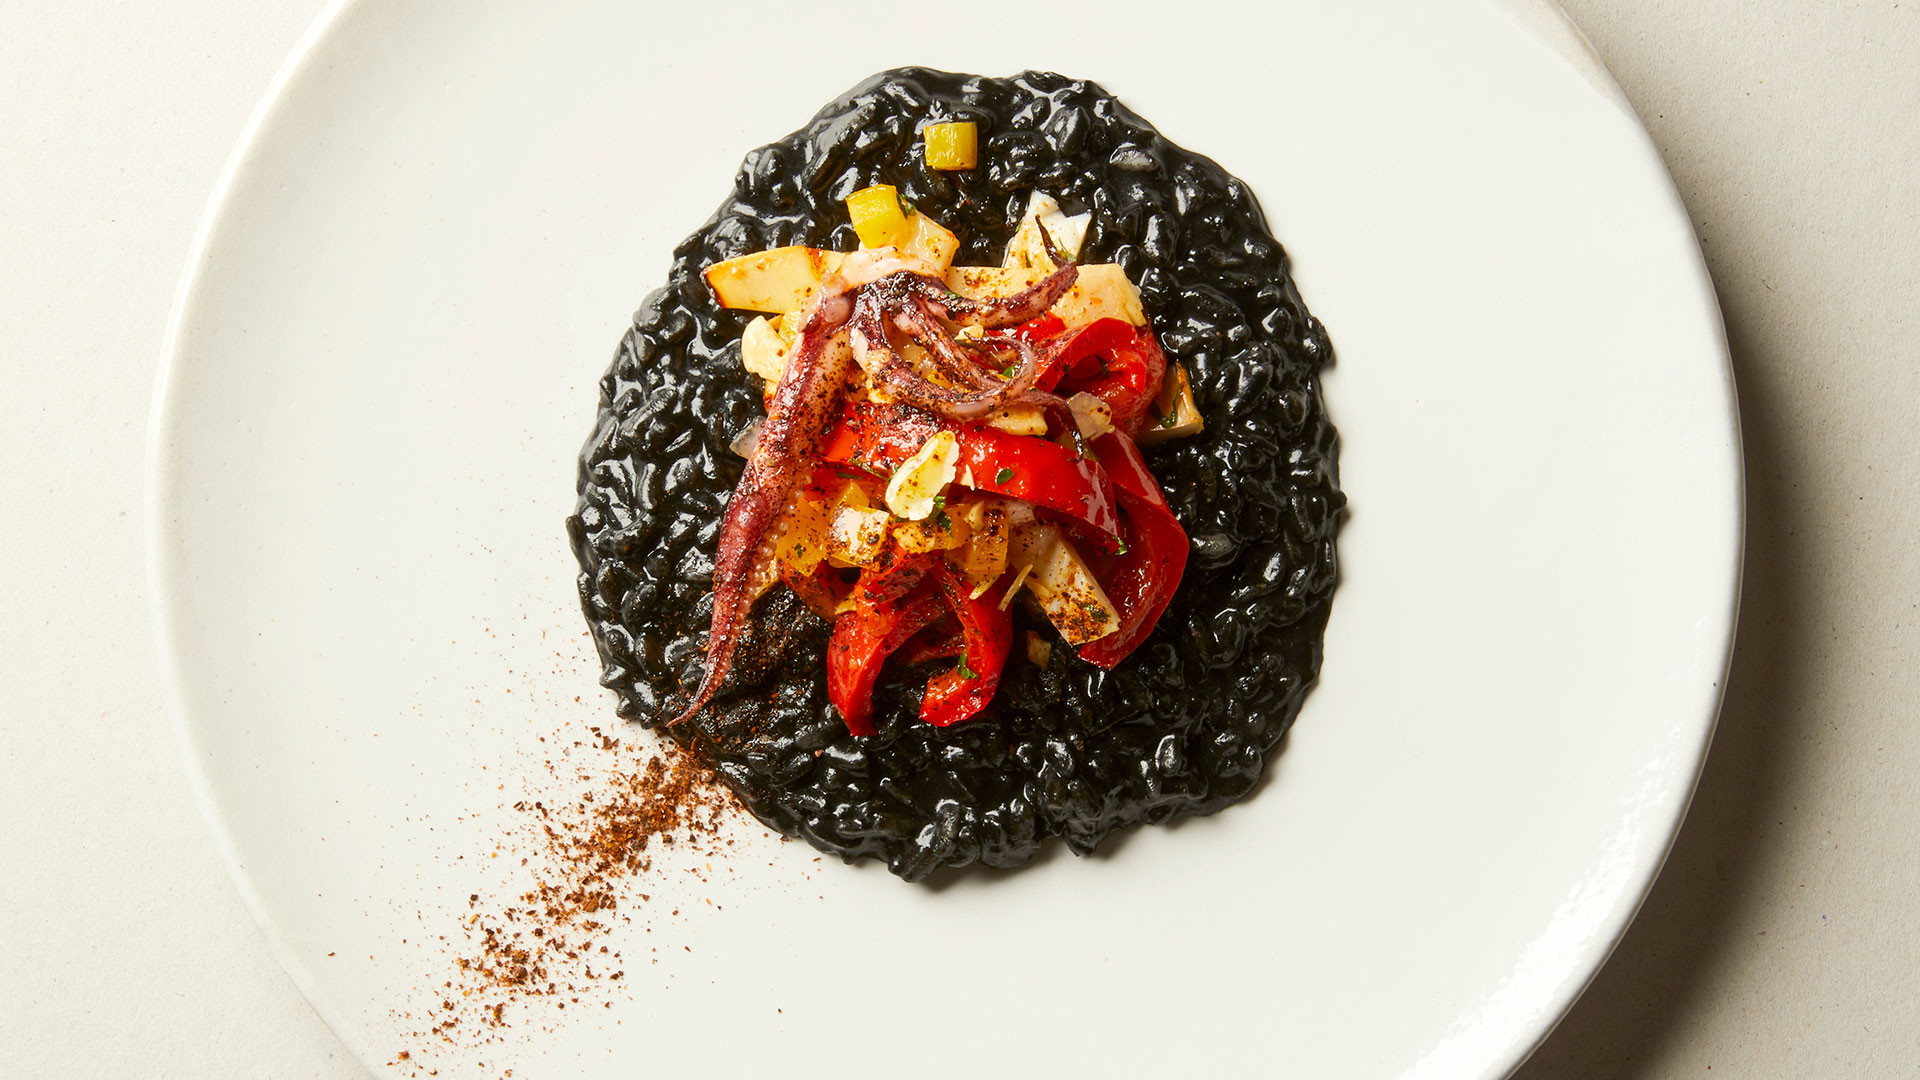 Seared squid with black rice, peppers and almonds from Tate Modern L9 Restaurant